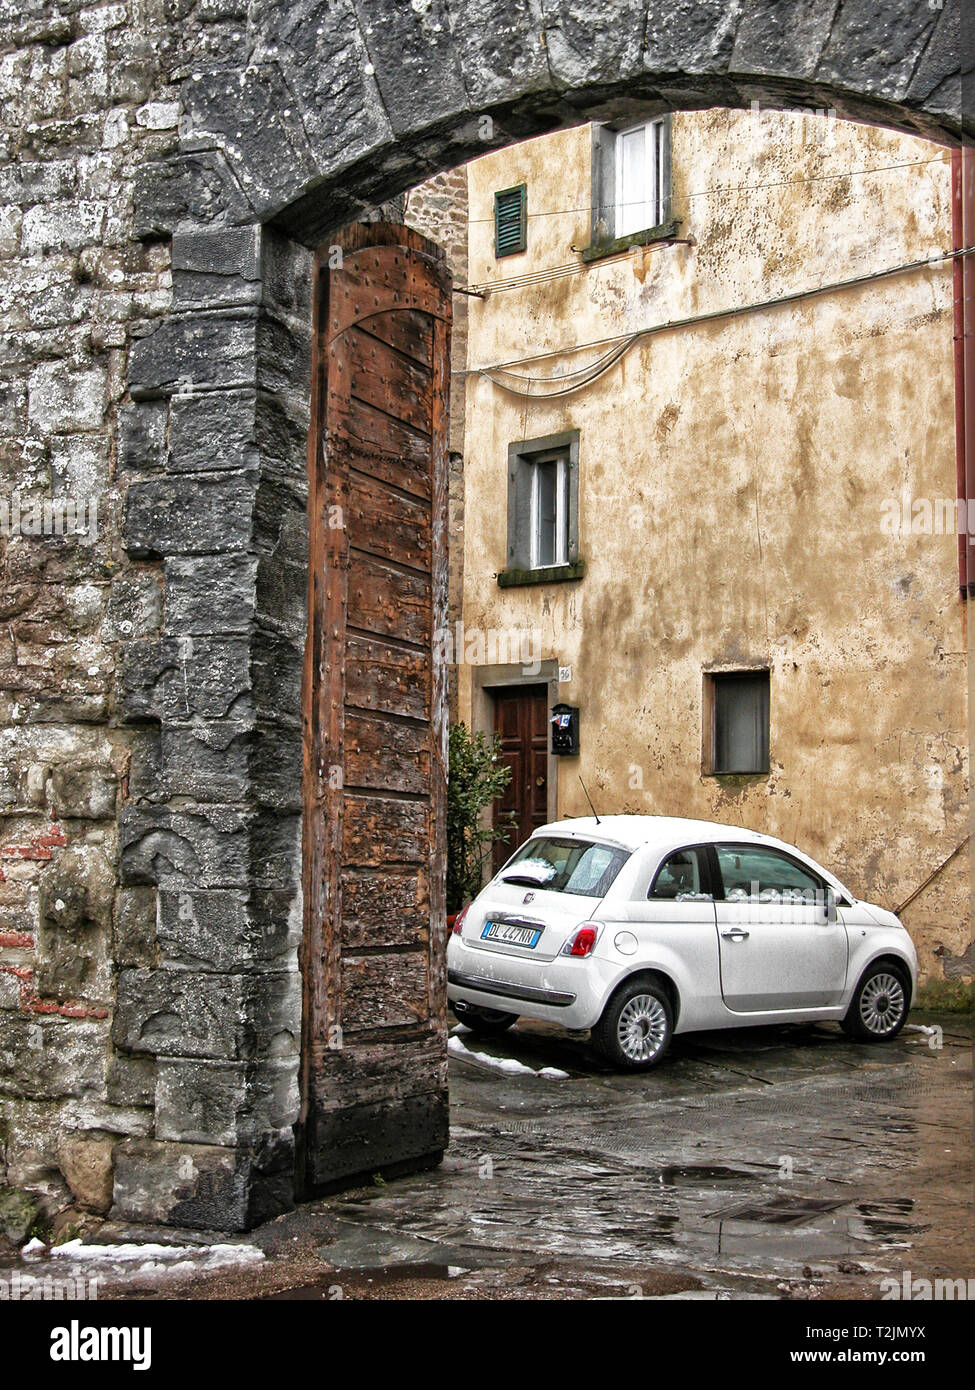 Entrance to walled city - Italy - Stock Image